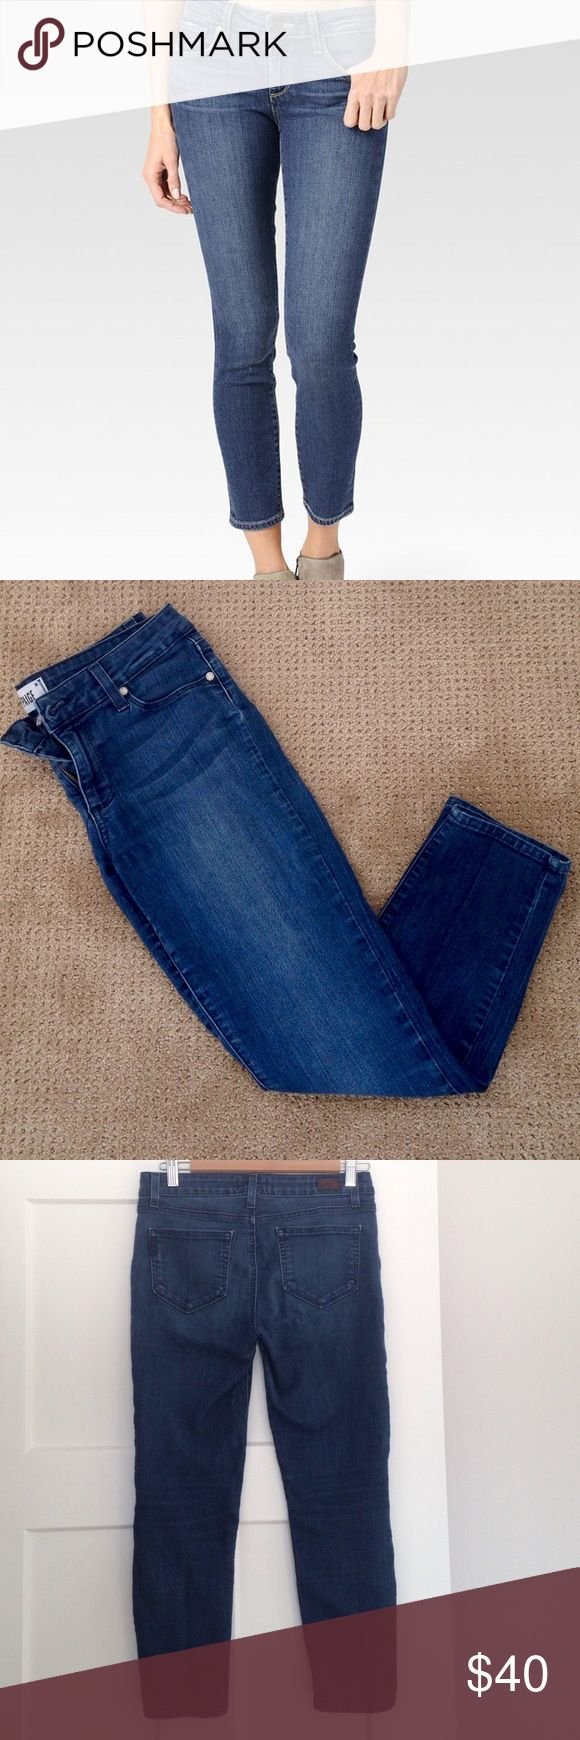 Paige Premium Denim Kylie Crop jeans, size 28 These Kylie Crop skinny jeans from Paige Premium Denim are in excellent used condition with no visible flaws. Super soft, stretchy and comfortable, with a flattering cut. Medium vintage wash, size 28. Sold out on the Paige Denim website. Made in the USA. 🇺🇸 Paige Jeans Jeans Skinny